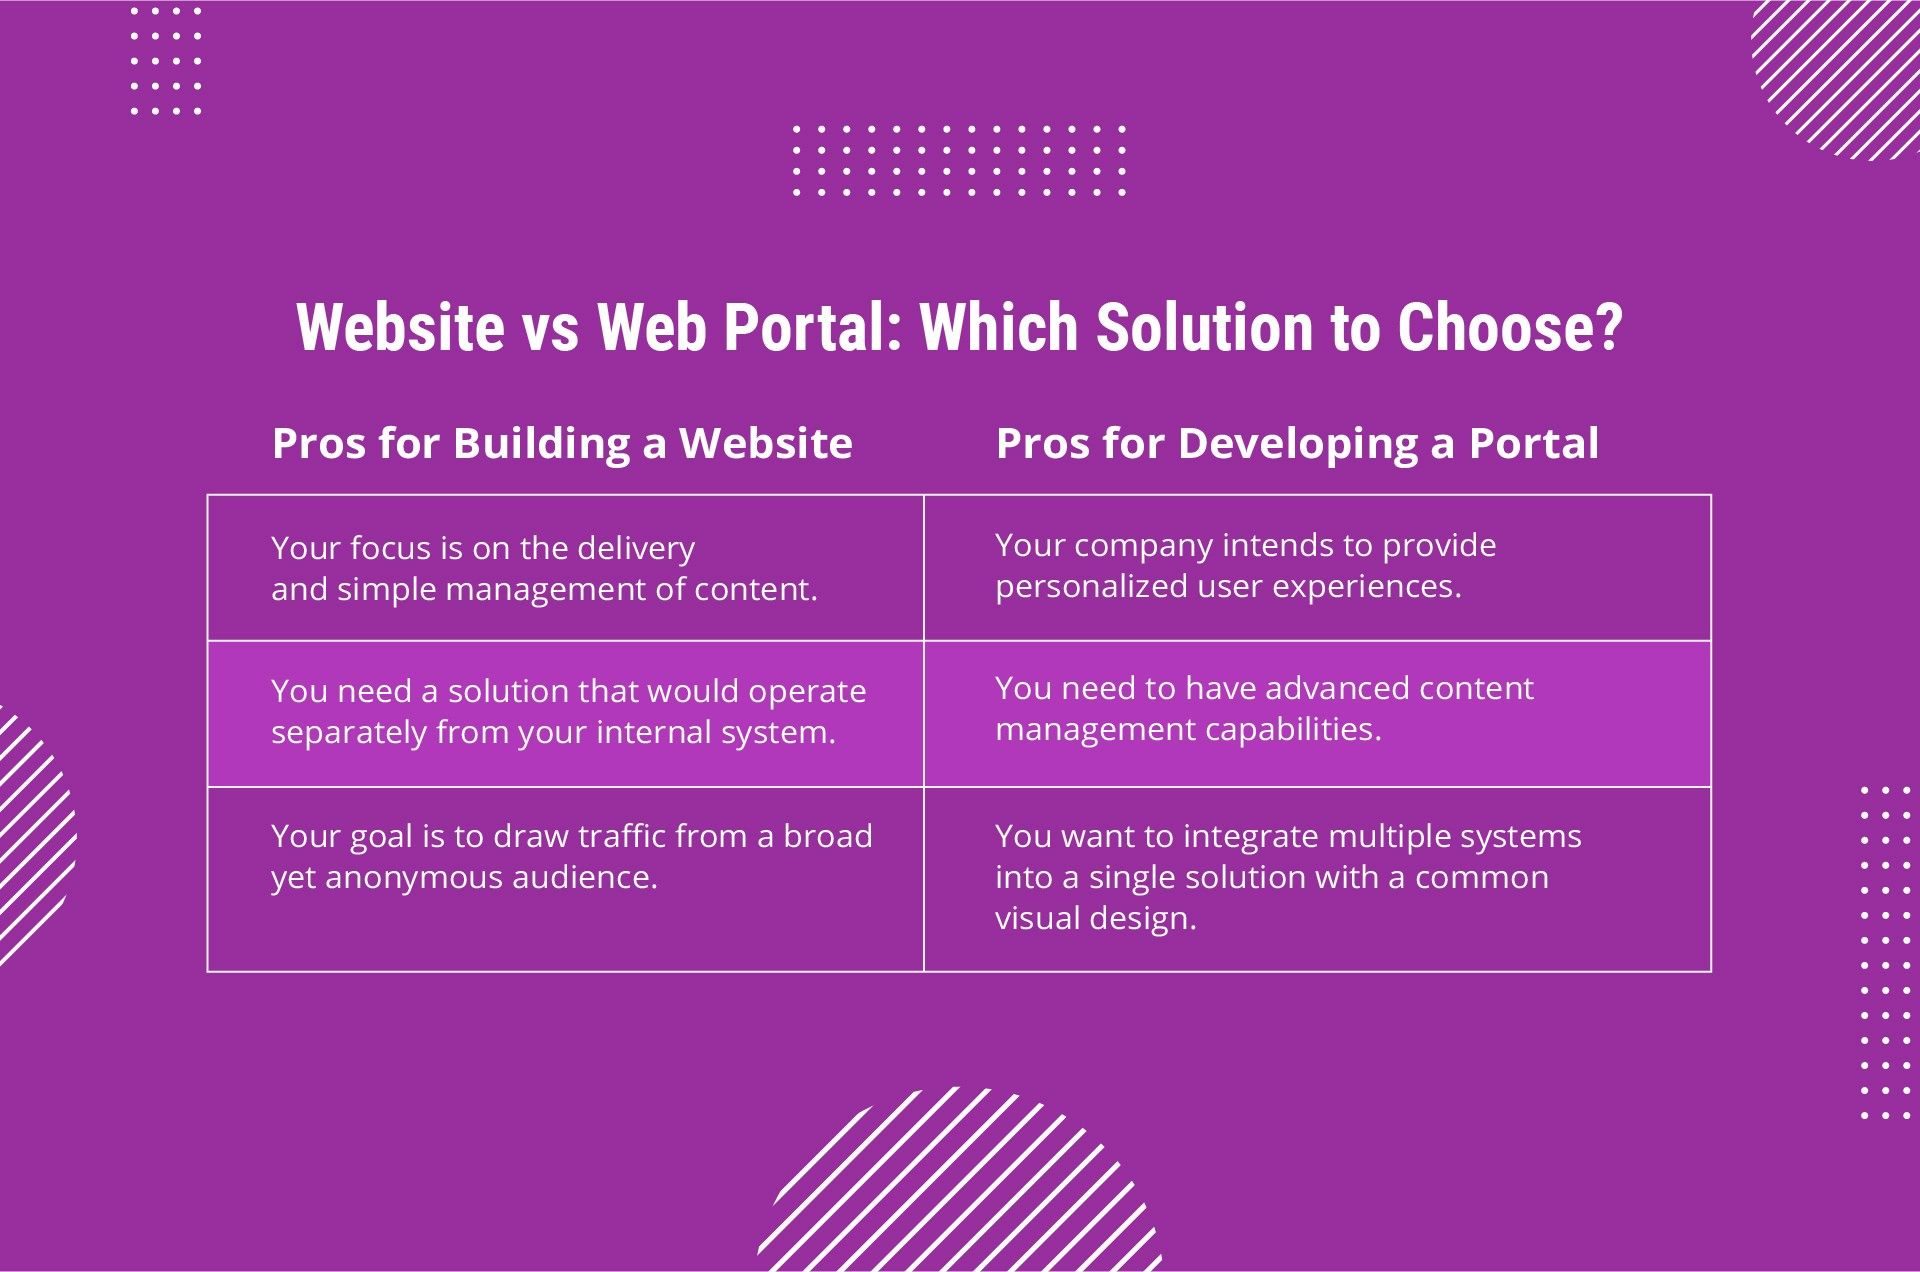 website vs web portal: which solution to choose?